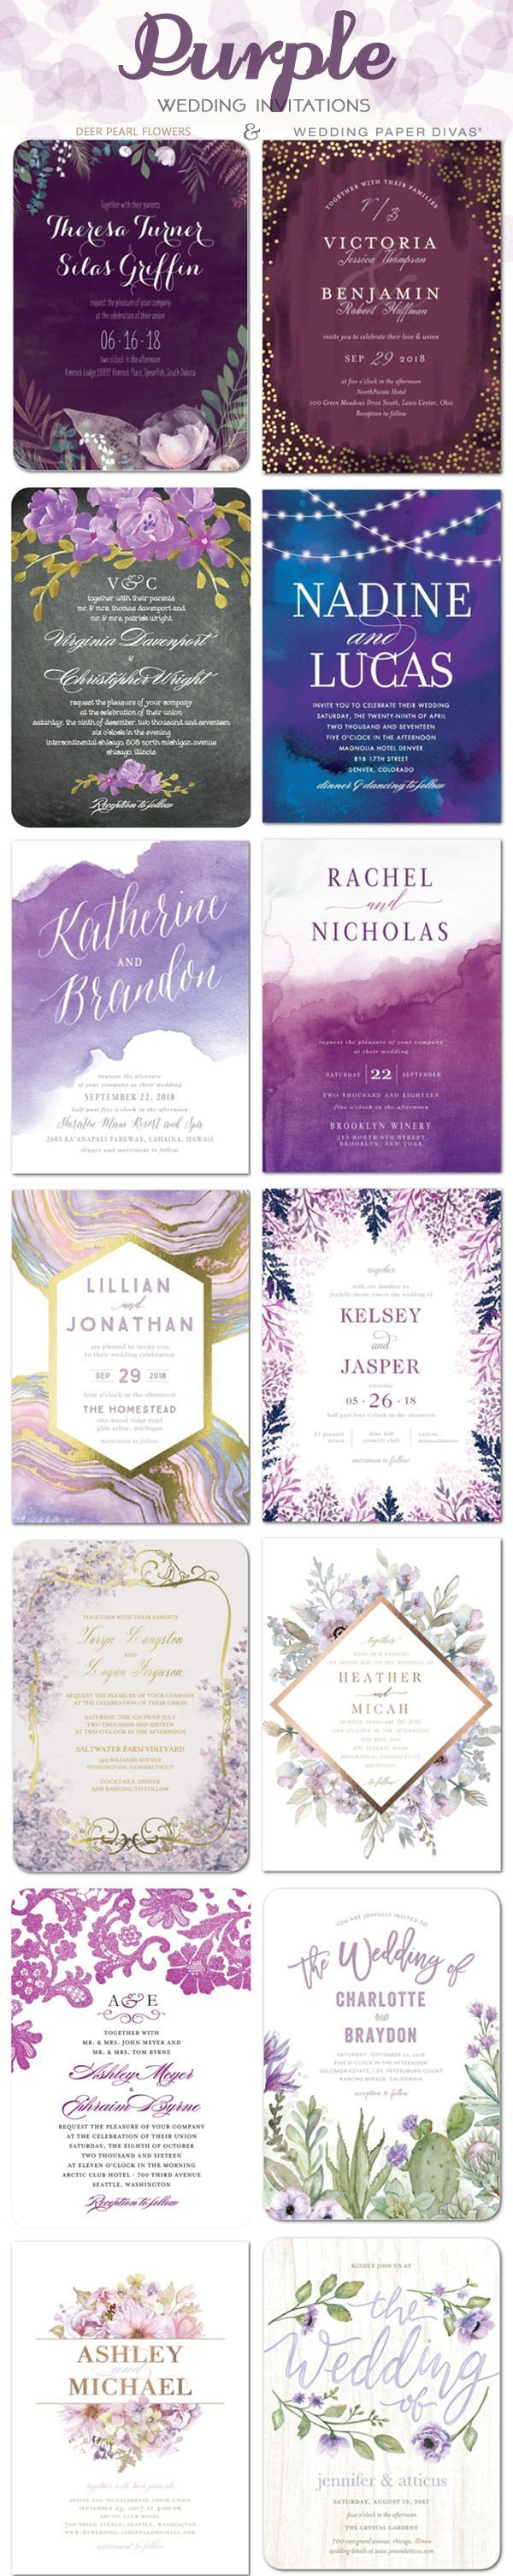 south african traditional wedding invitations samples%0A Purple wedding color ideas  Purple wedding invitations    http   www deerpearlflowers